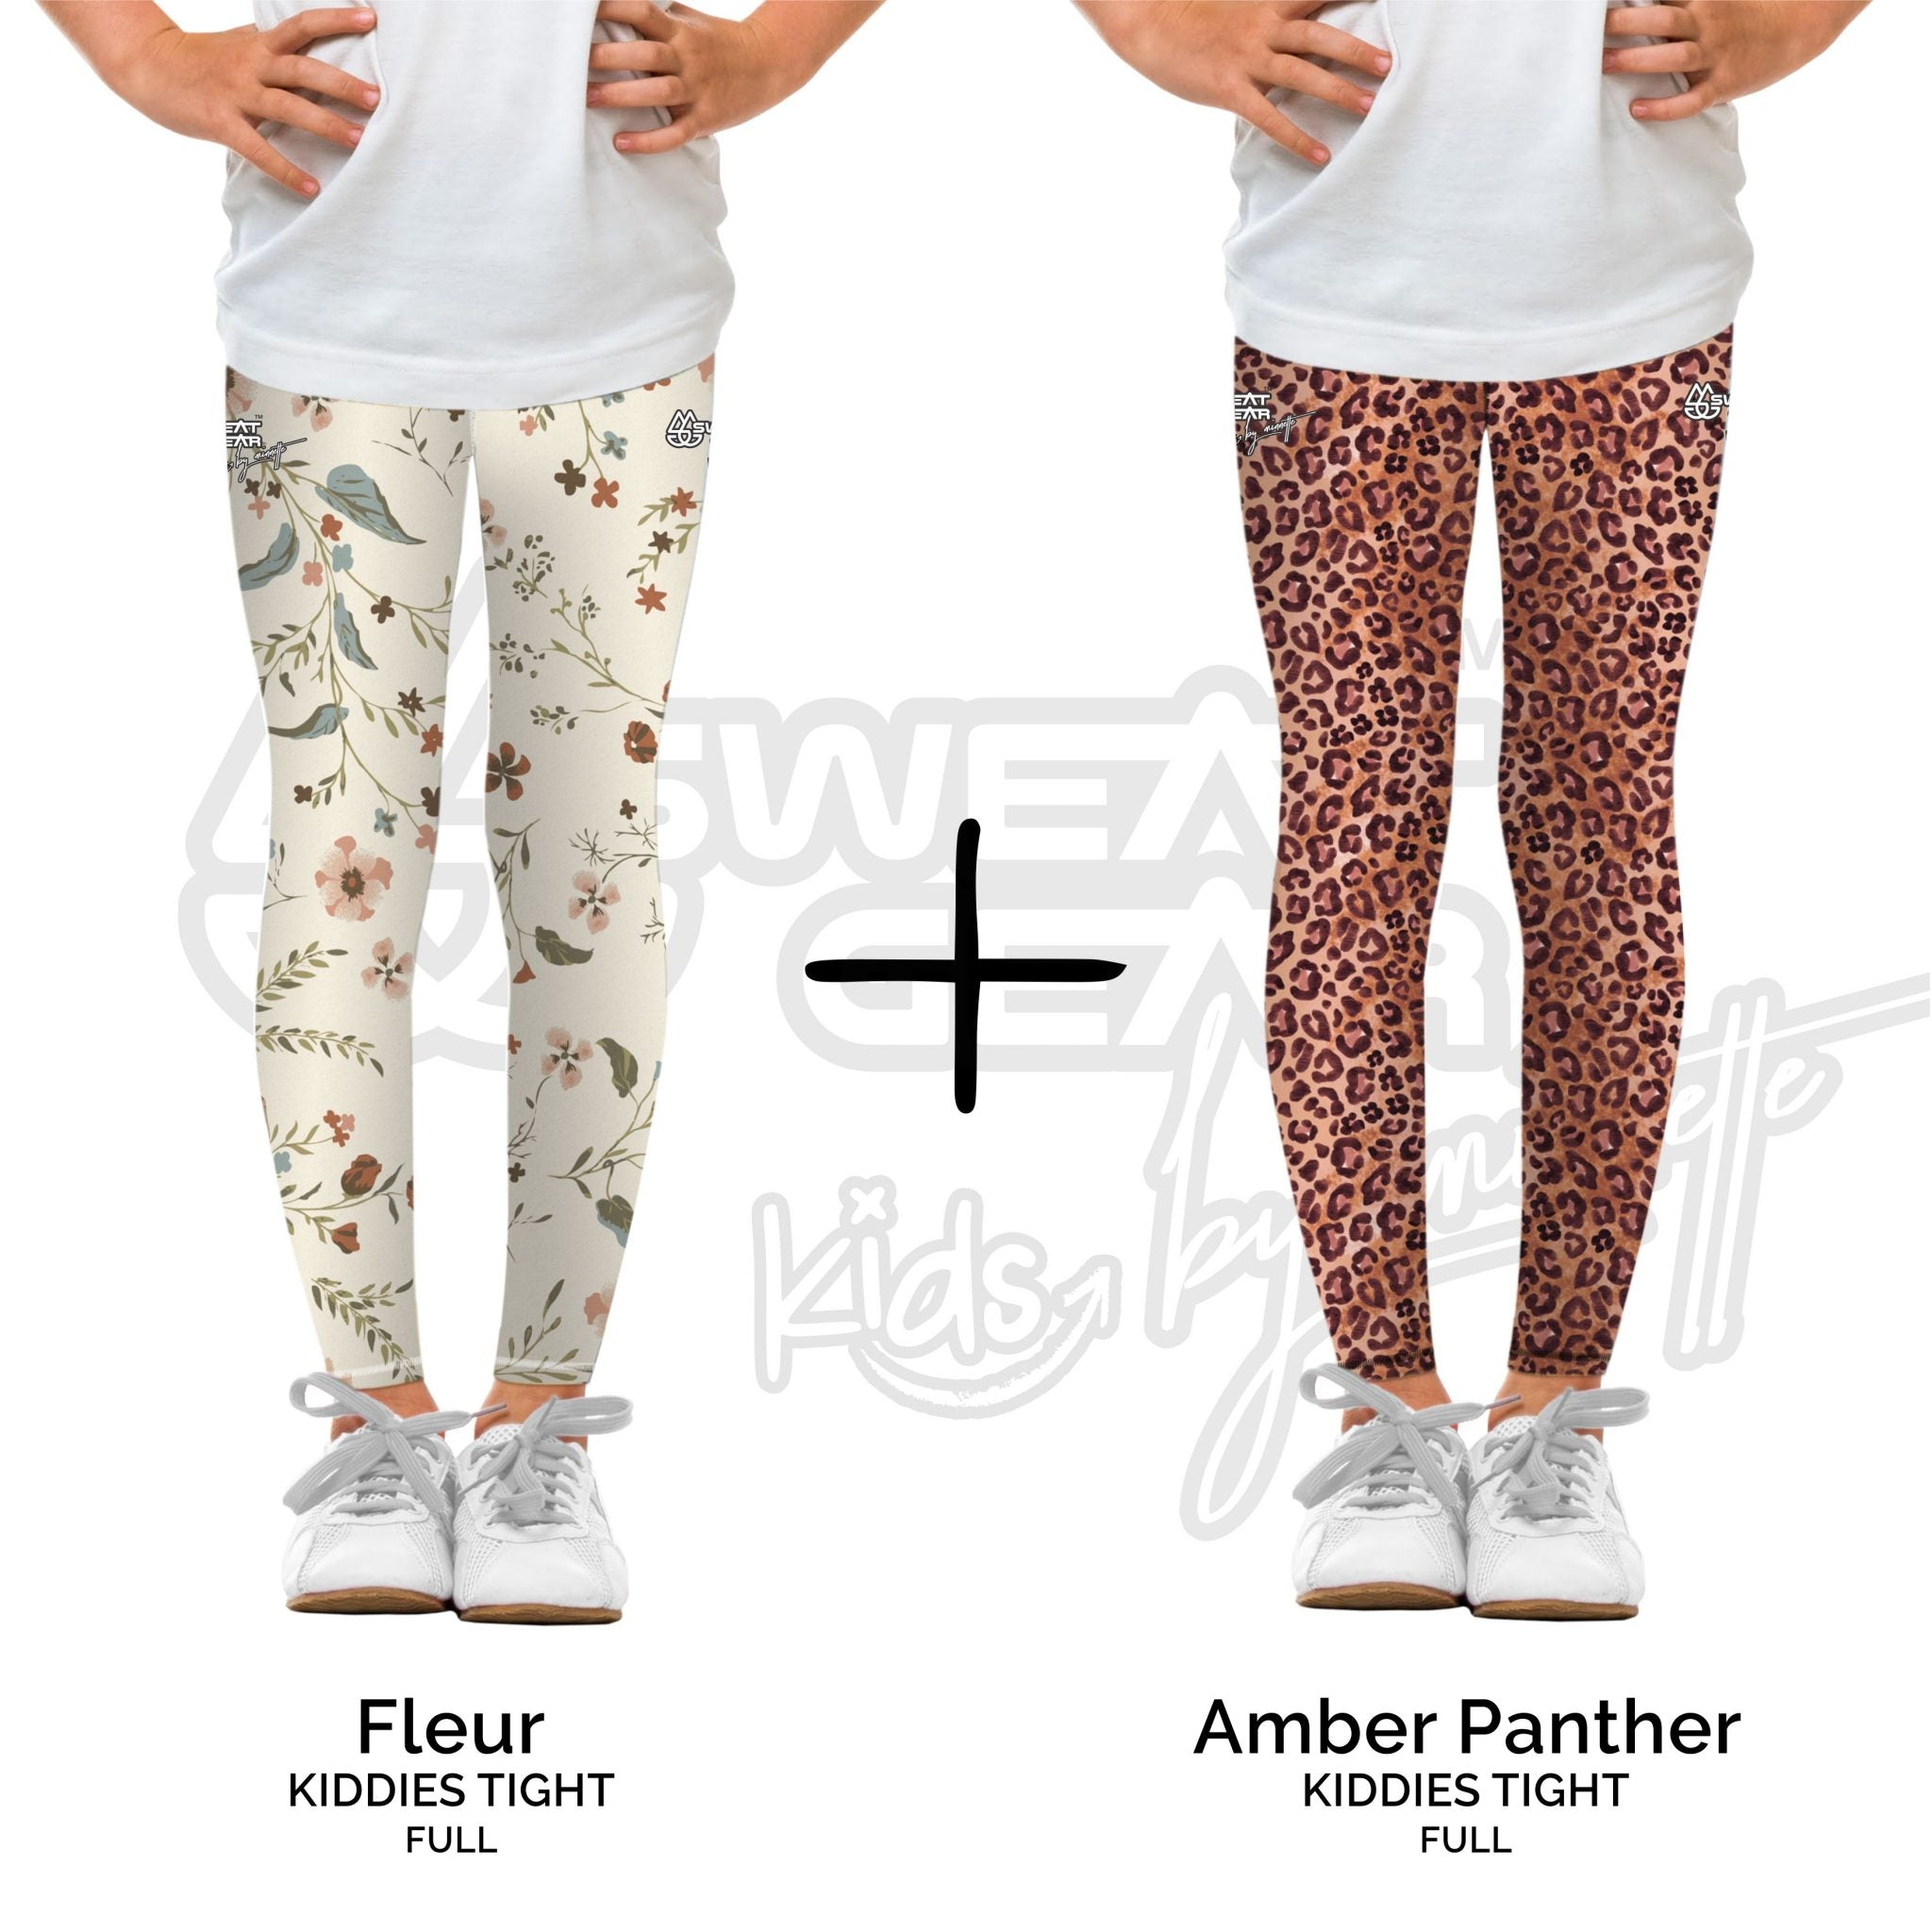 Bundle of 2: Fleur + Amber Panther (Sweatgear.Kids Designed by Minnette)